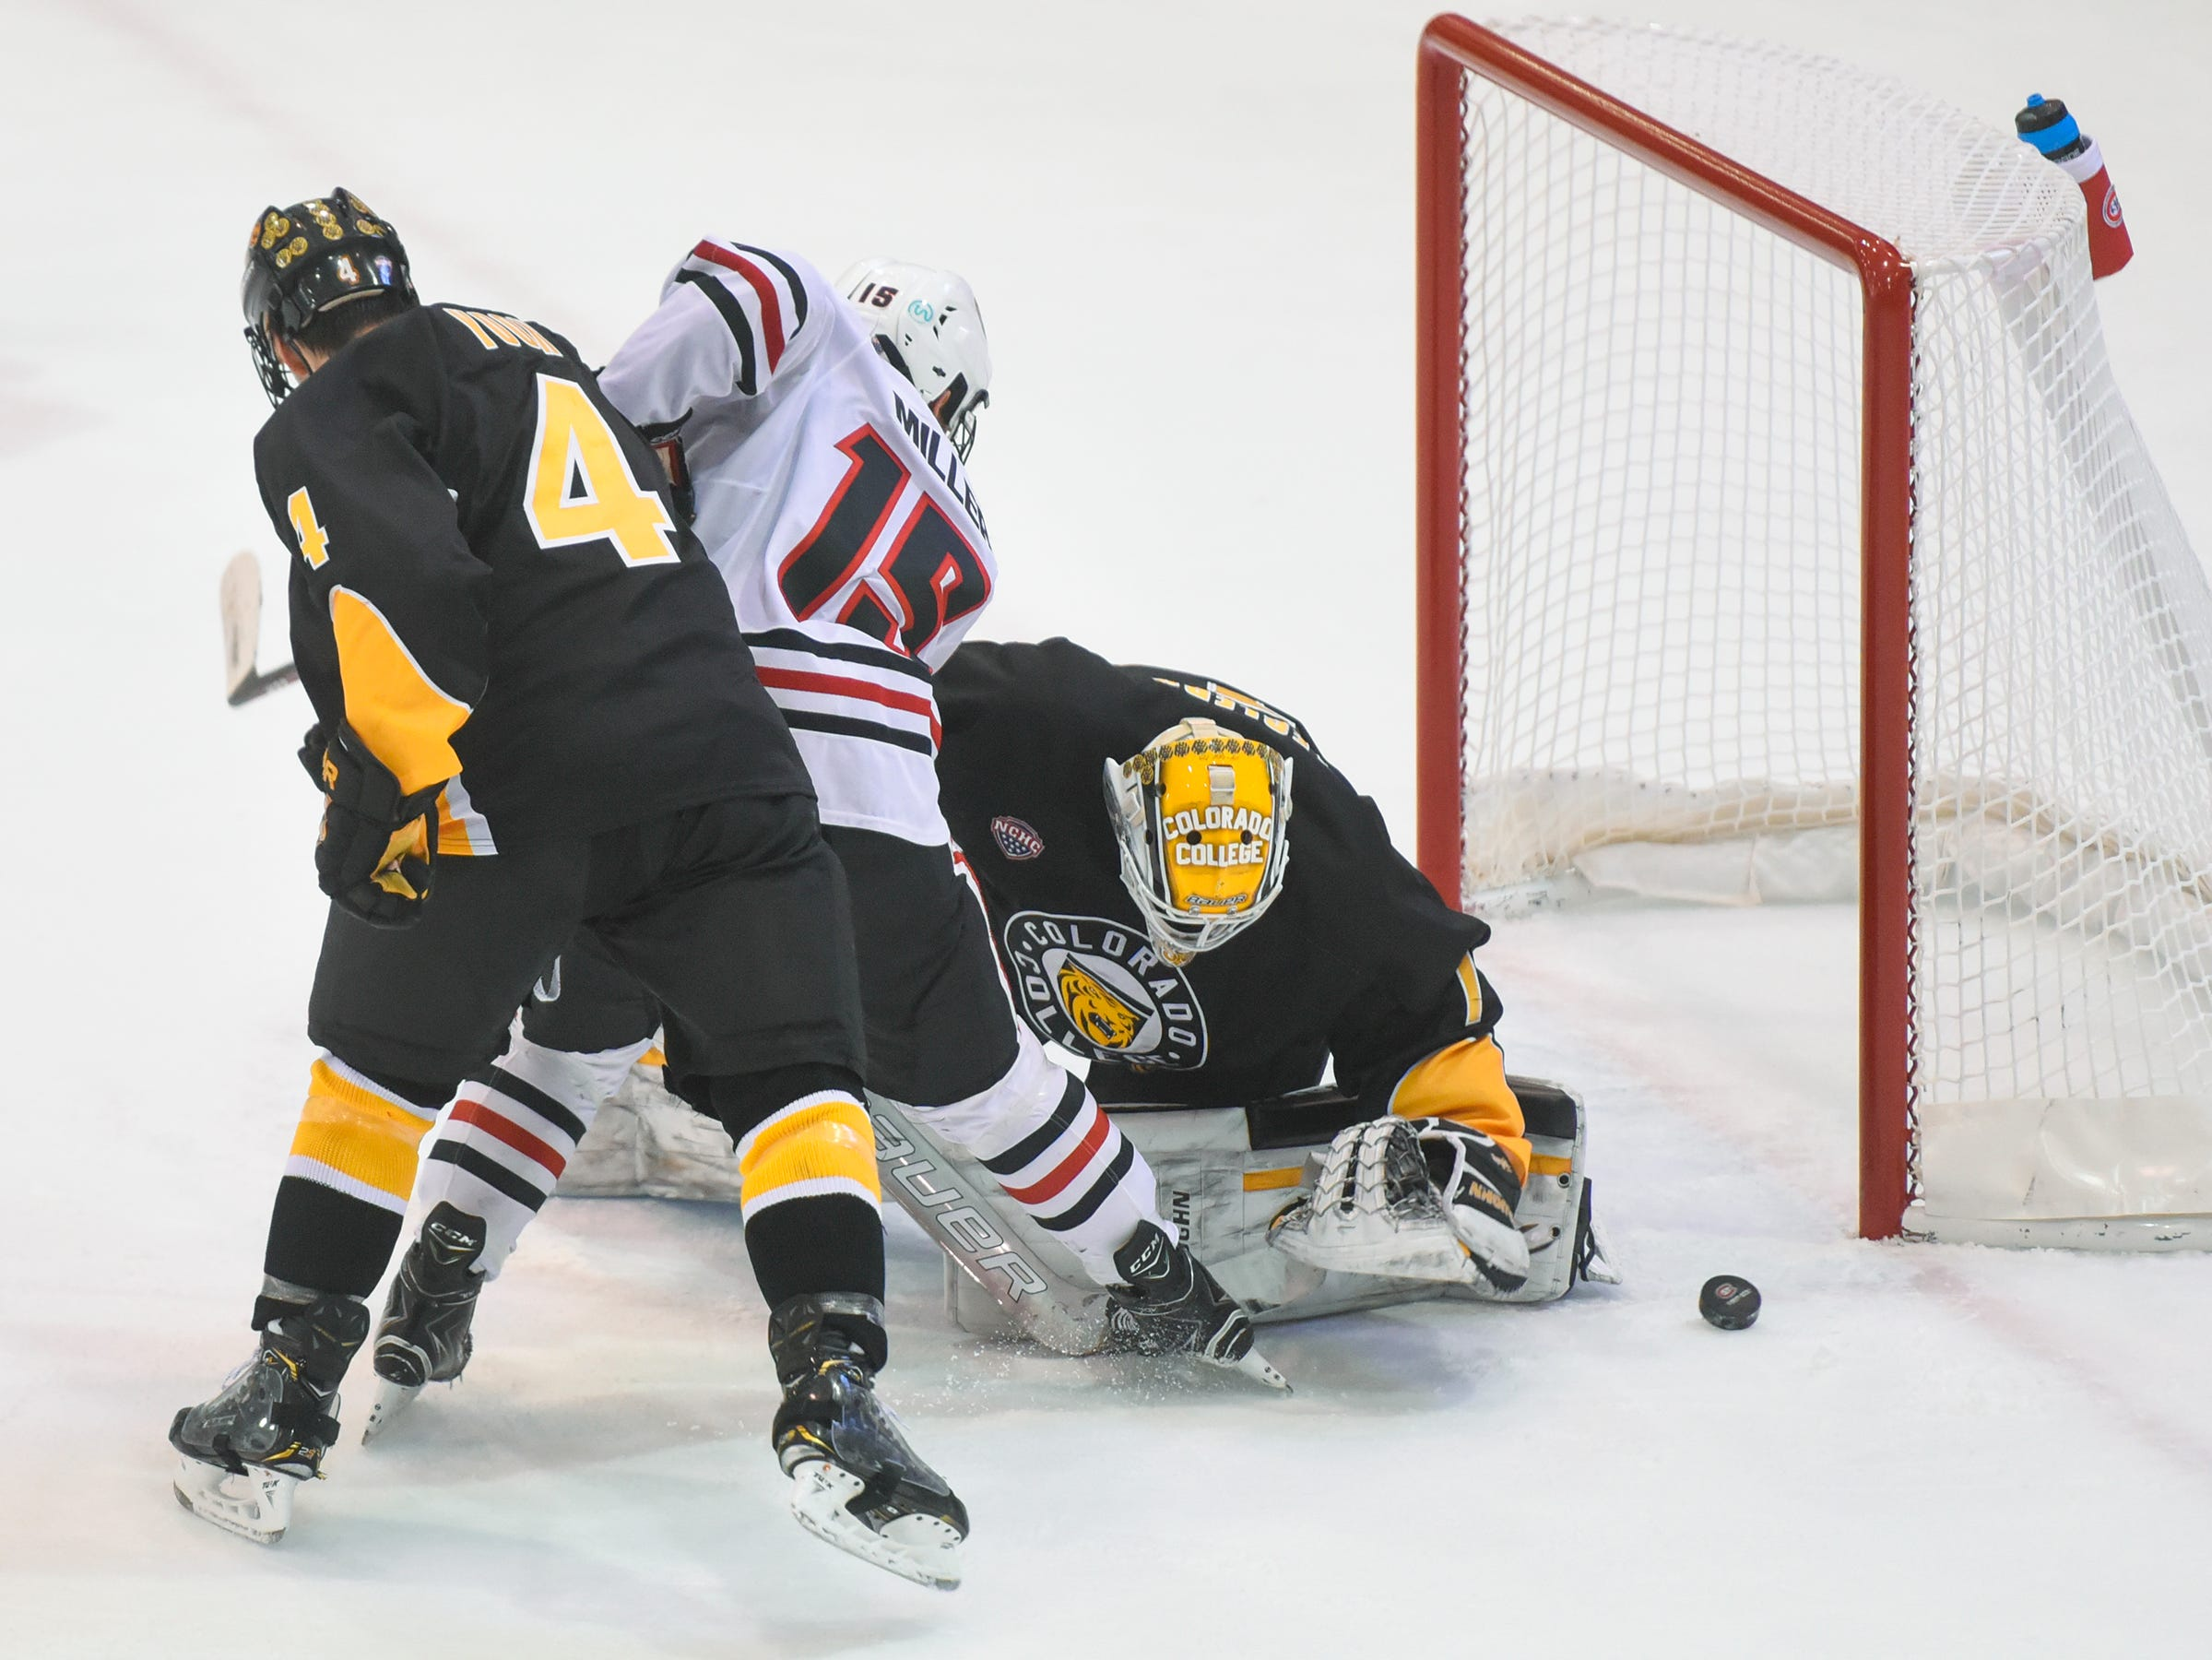 A shot by St. Cloud State's Micah Miller skips past Colorado College goaltender Alex Leclerc during the first period of the Saturday, Feb. 9, game at the Herb Brooks National Hockey Center in St. Cloud.